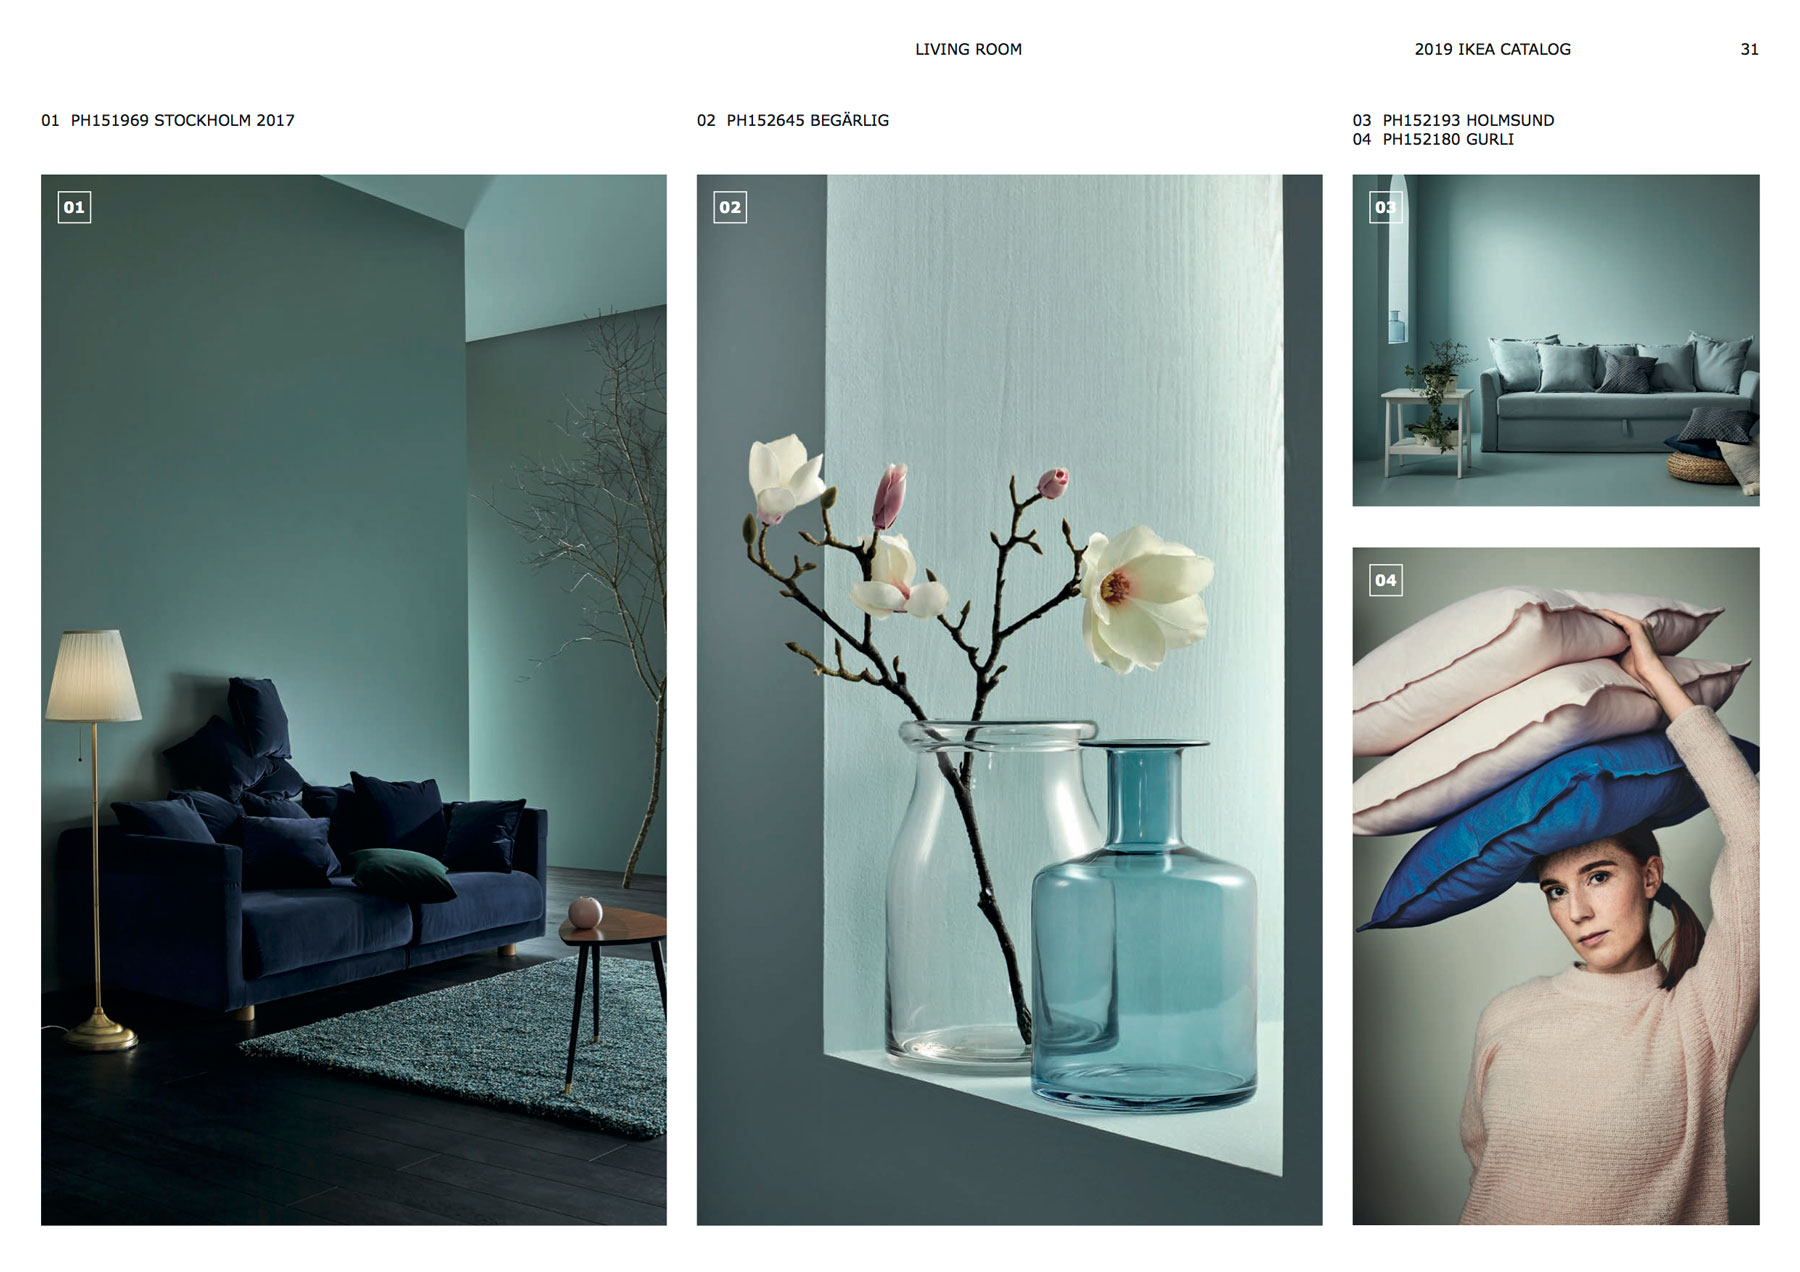 7 major design trends according to the ikea catalog 2019 real simple. Black Bedroom Furniture Sets. Home Design Ideas